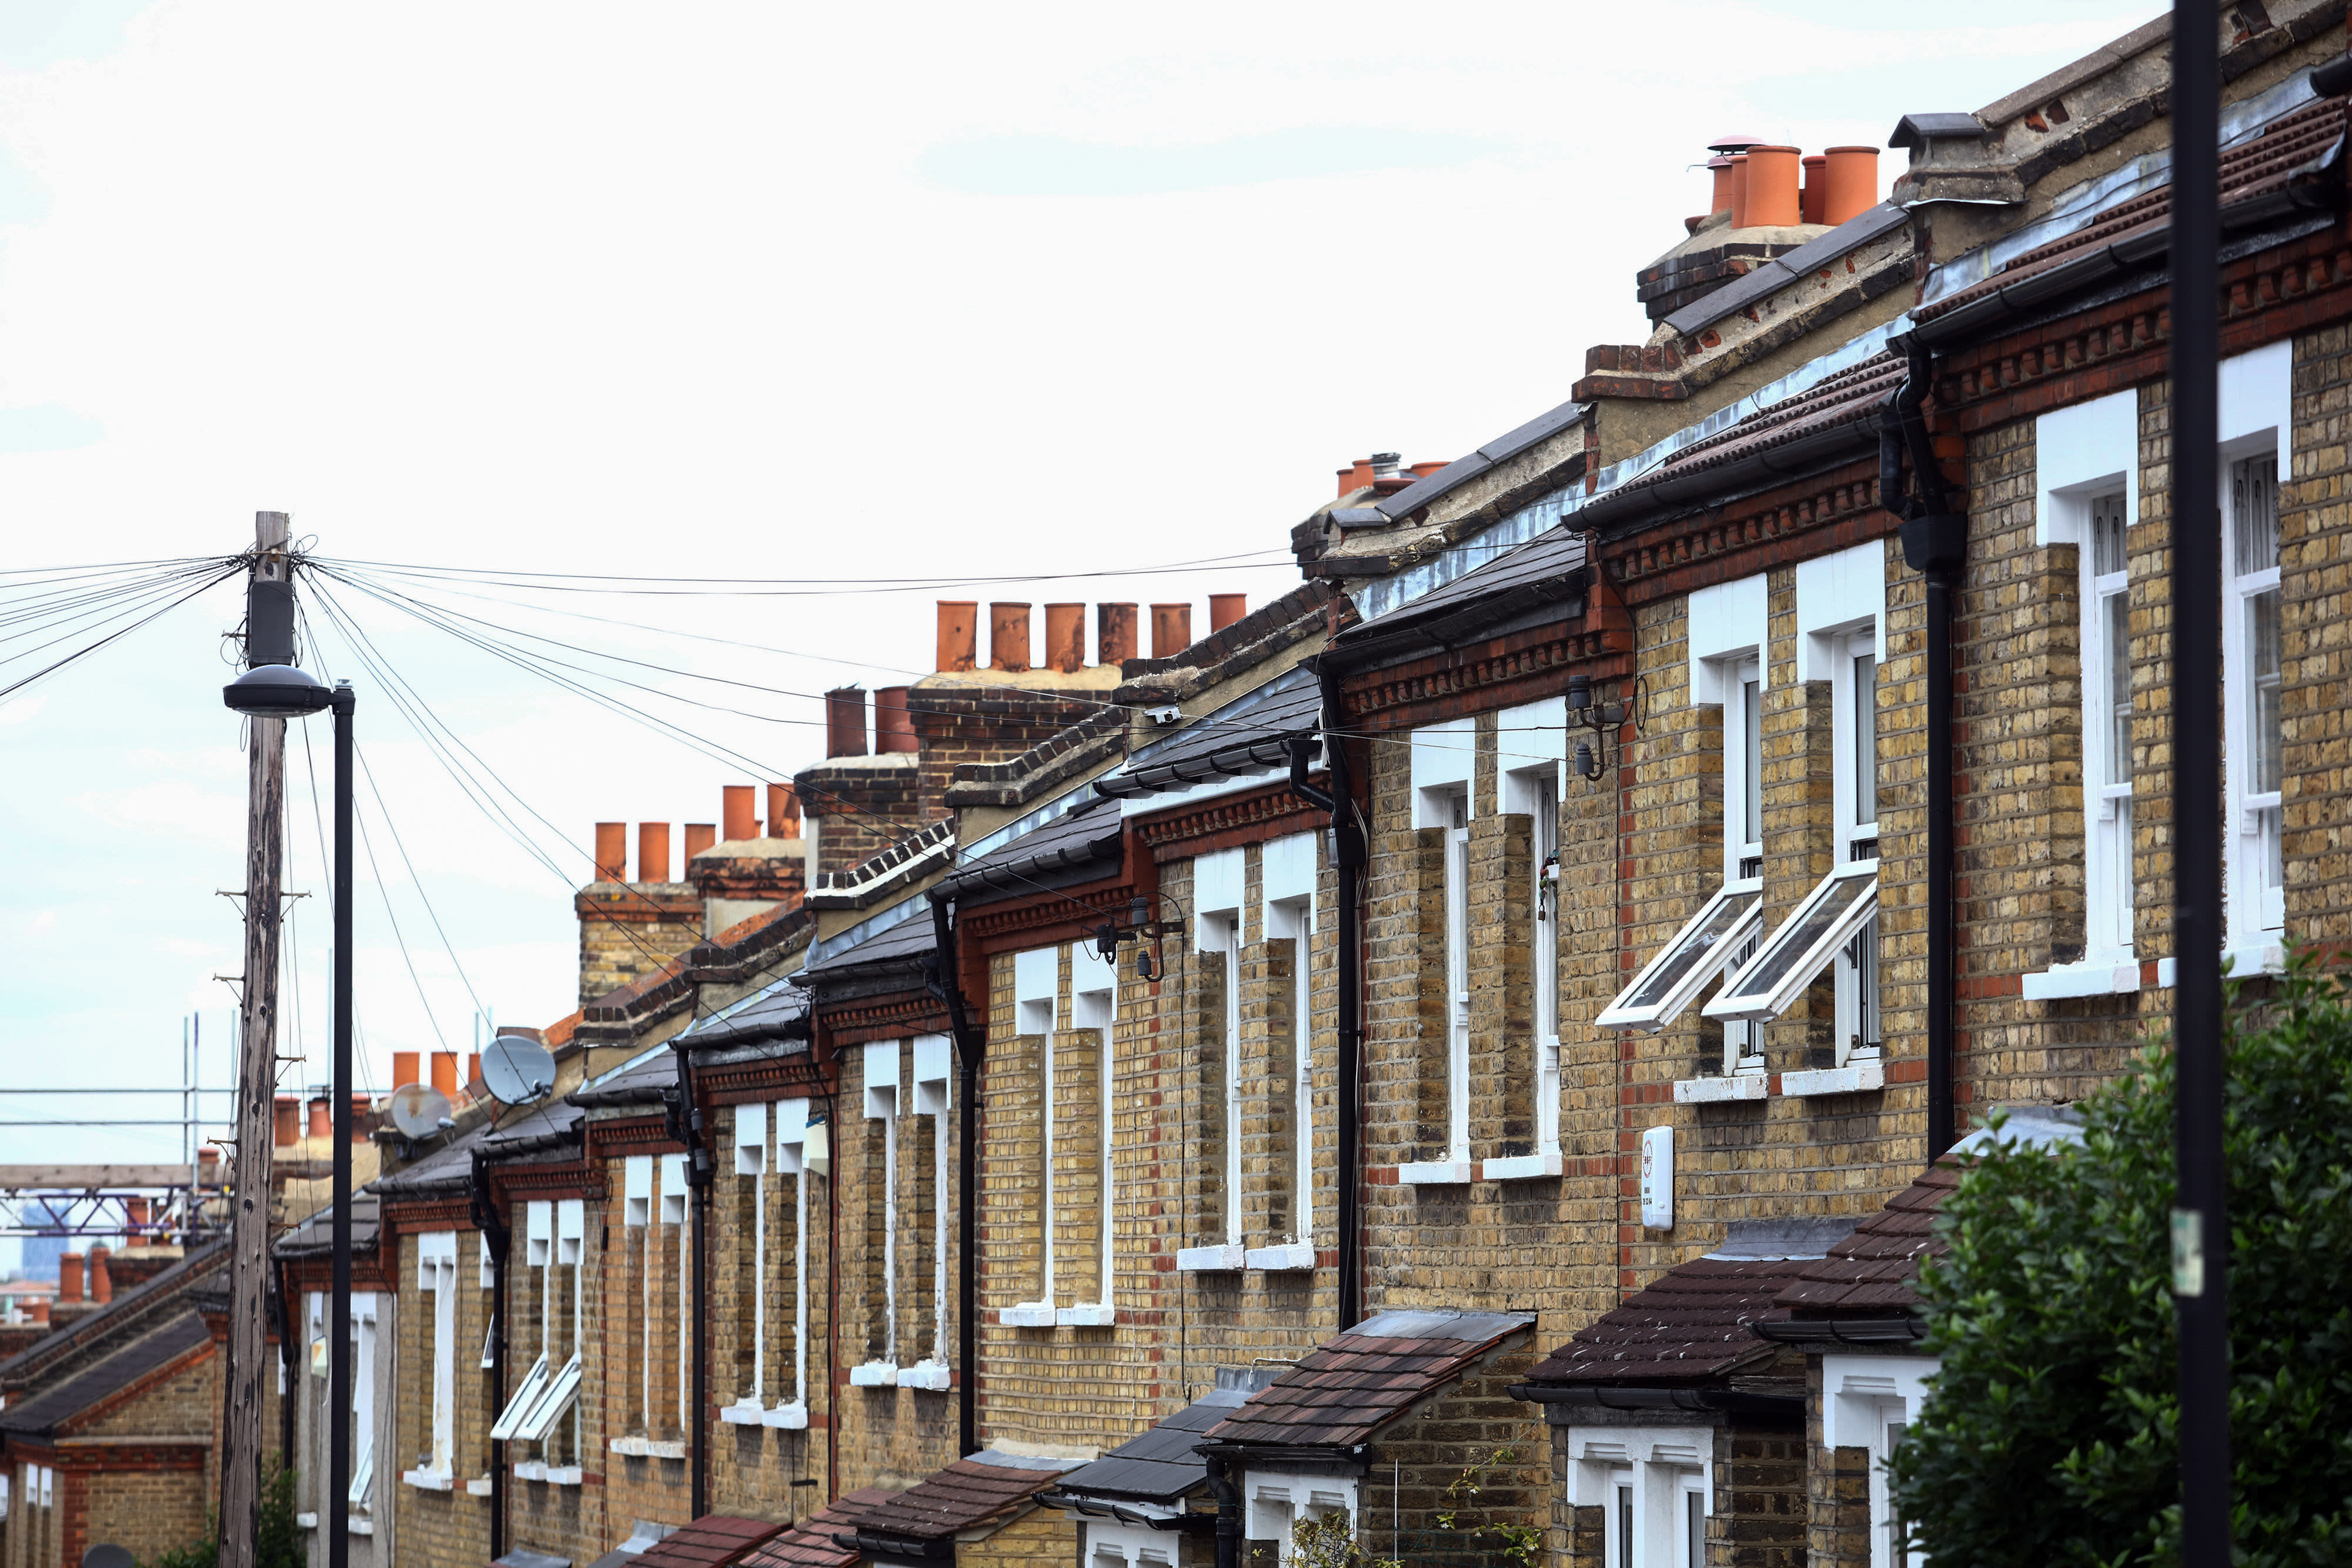 London continues to drag on UK house prices